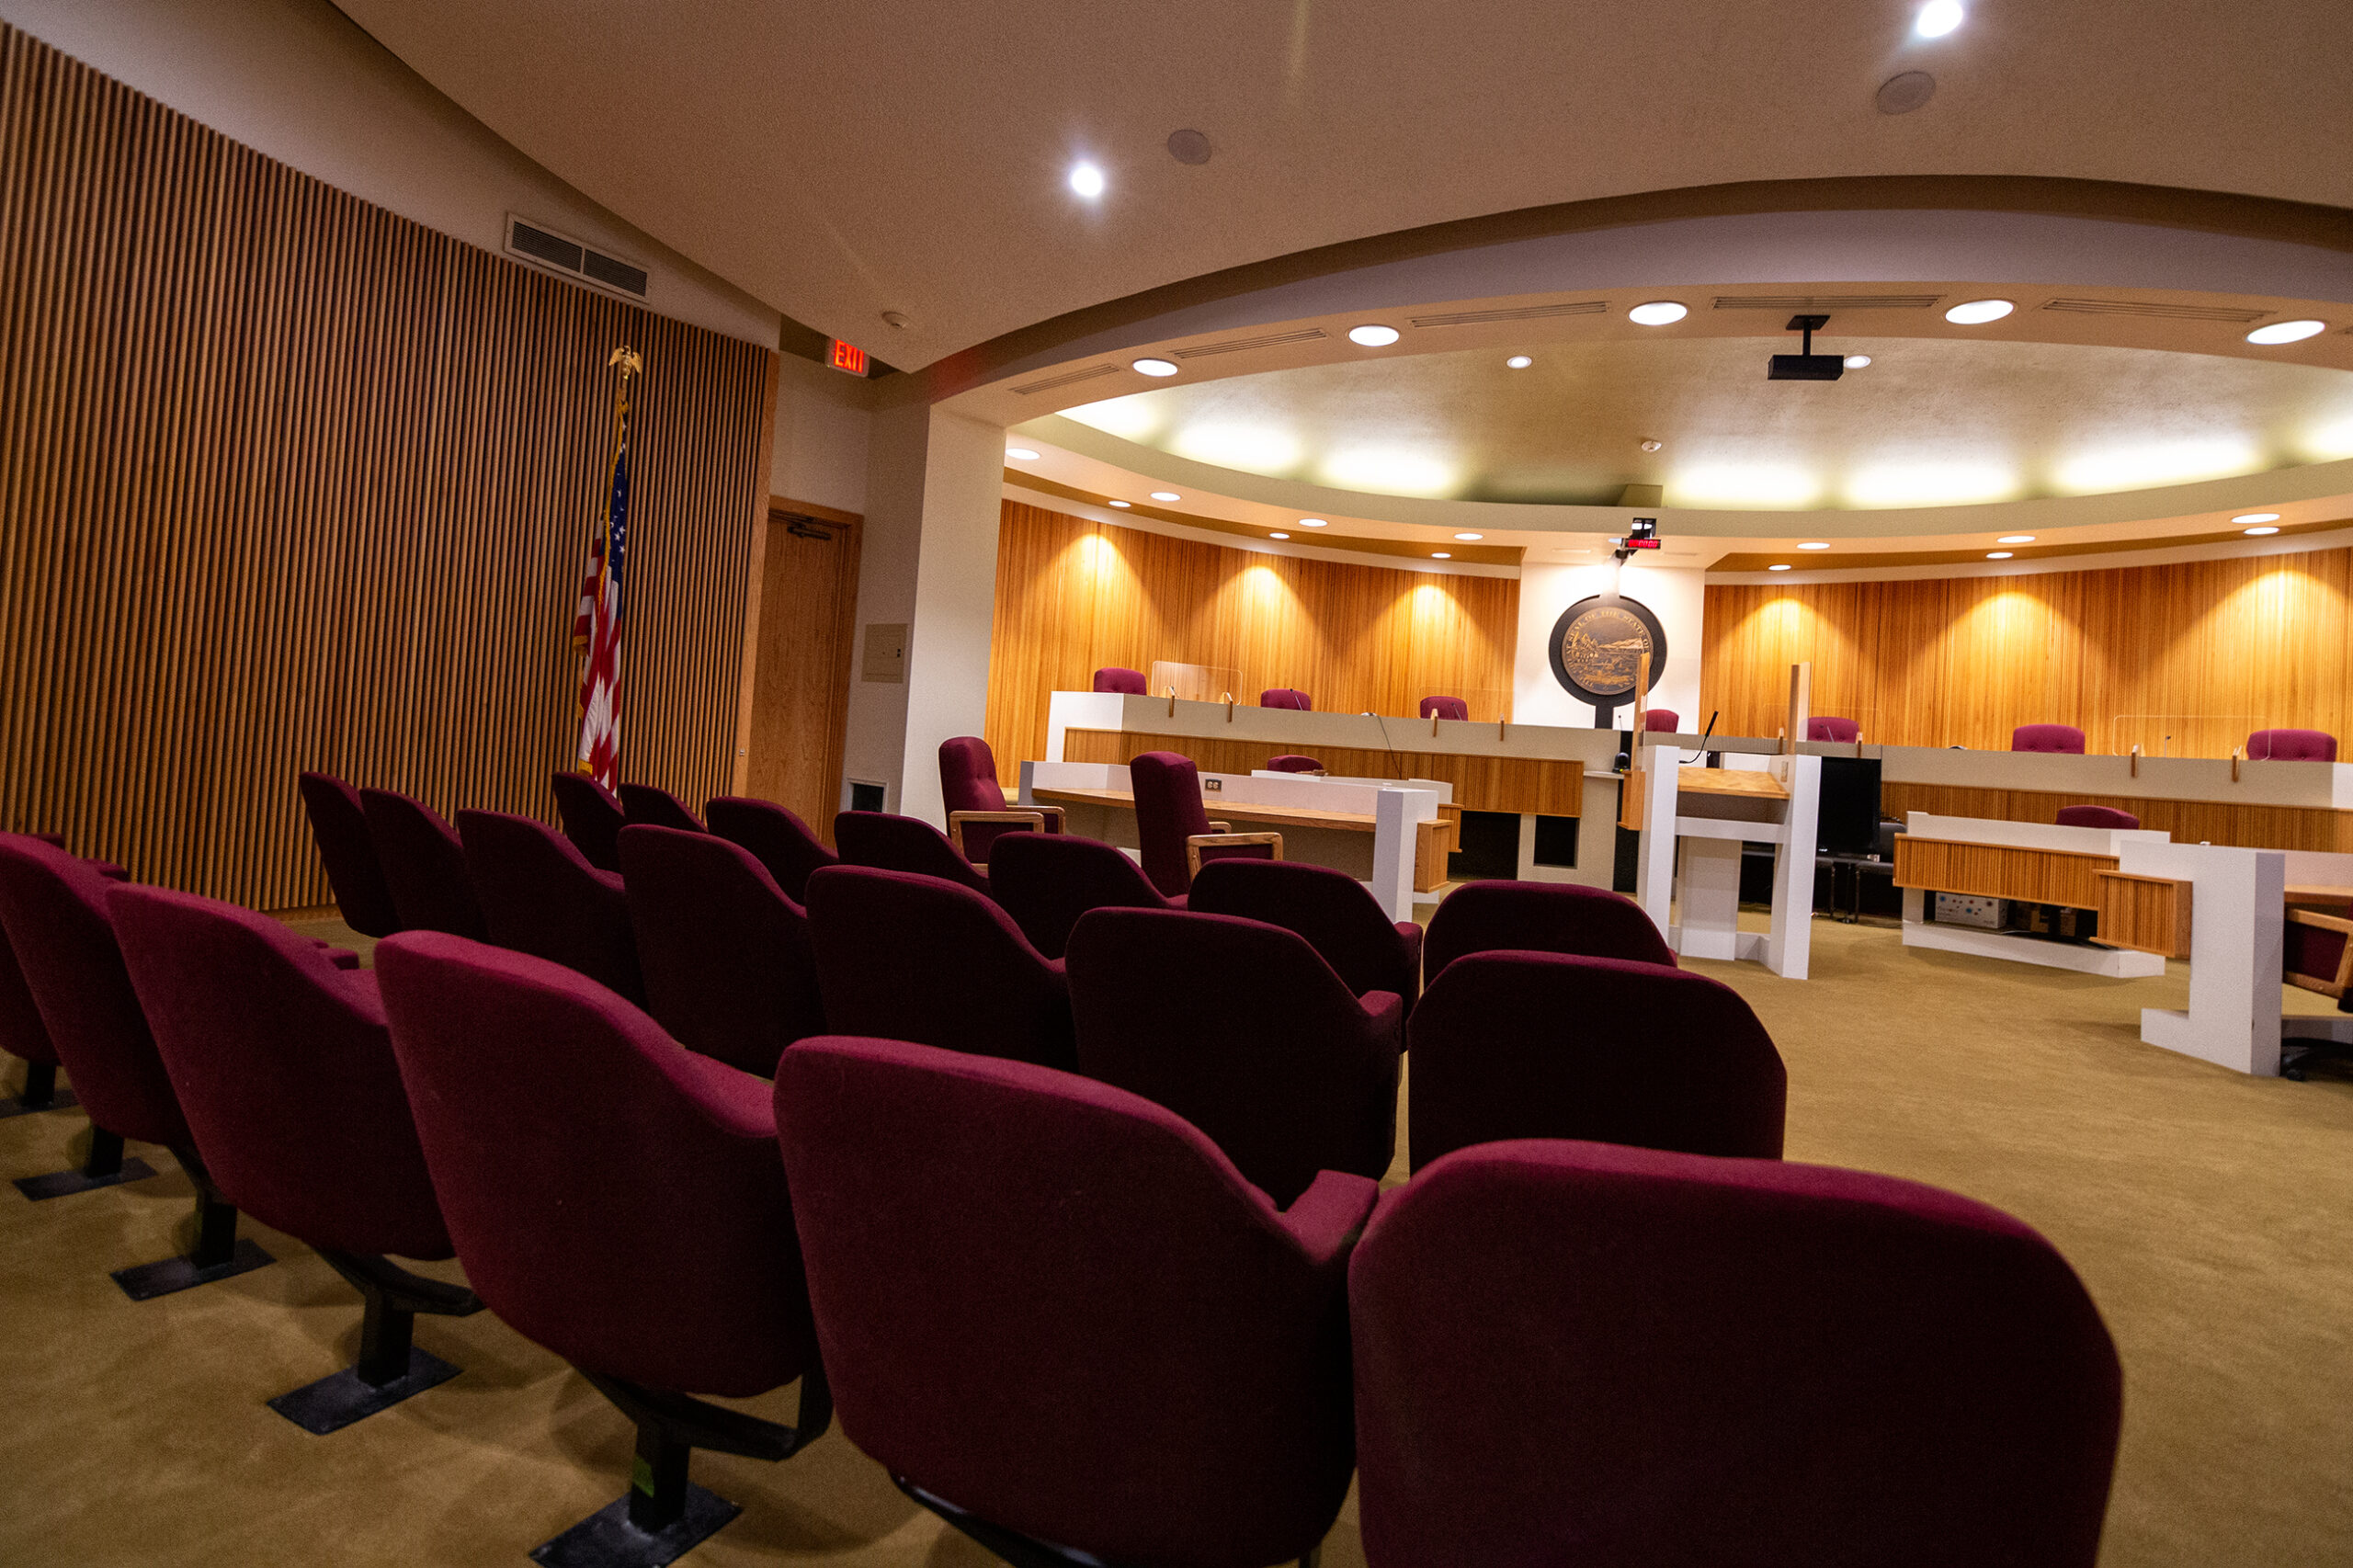 Court administrator urges Supreme Court to toss petition for rehearing